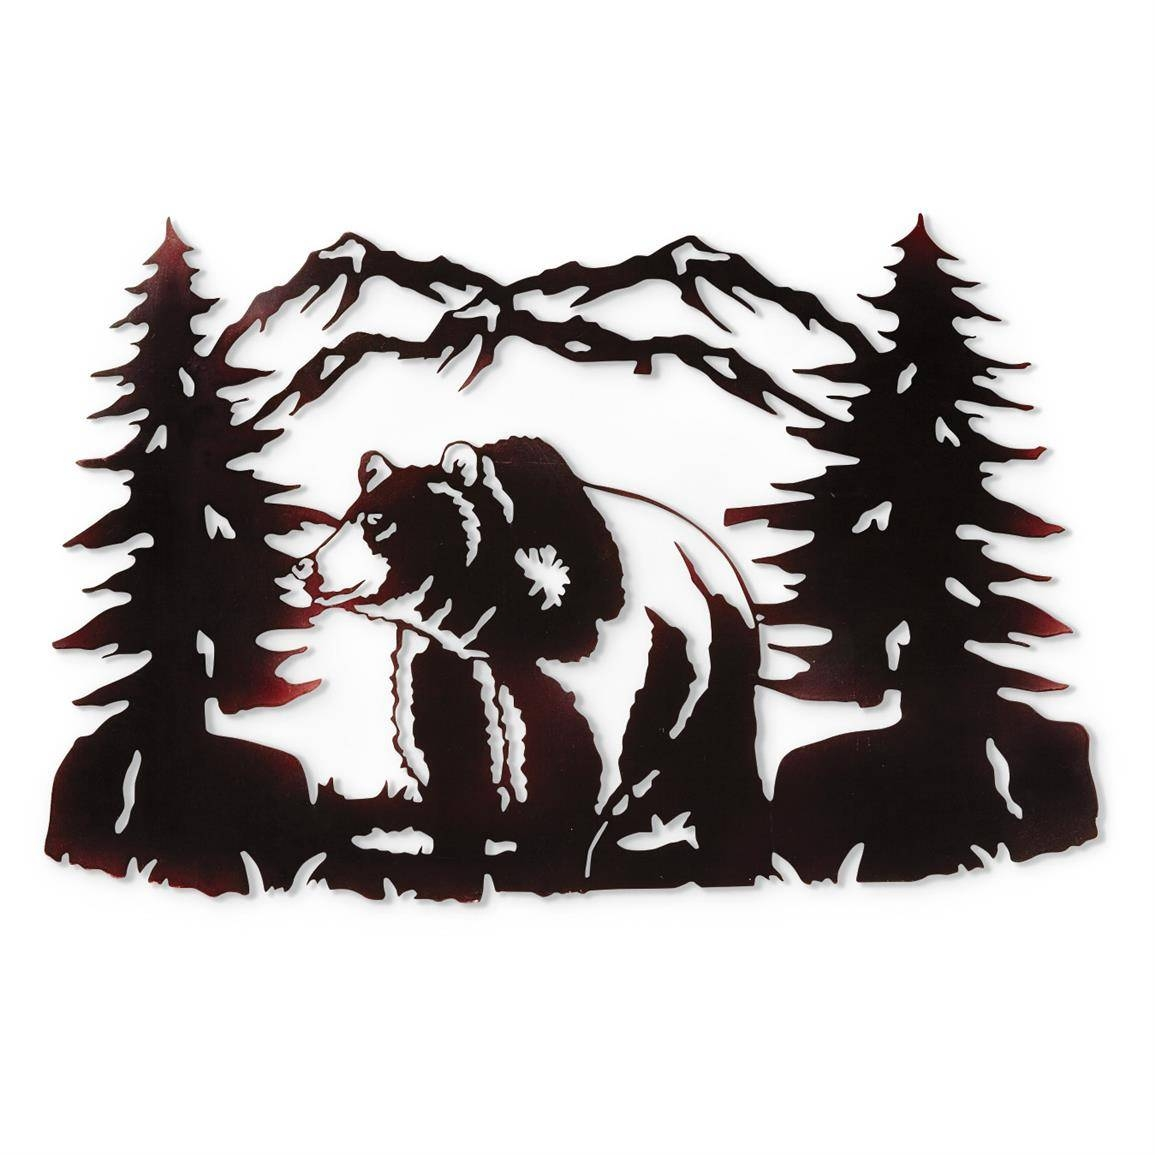 Bear Metal Wall Art – 648669, Wall Art At Sportsman's Guide With Most Recent Bear Metal Wall Art (Gallery 1 of 20)